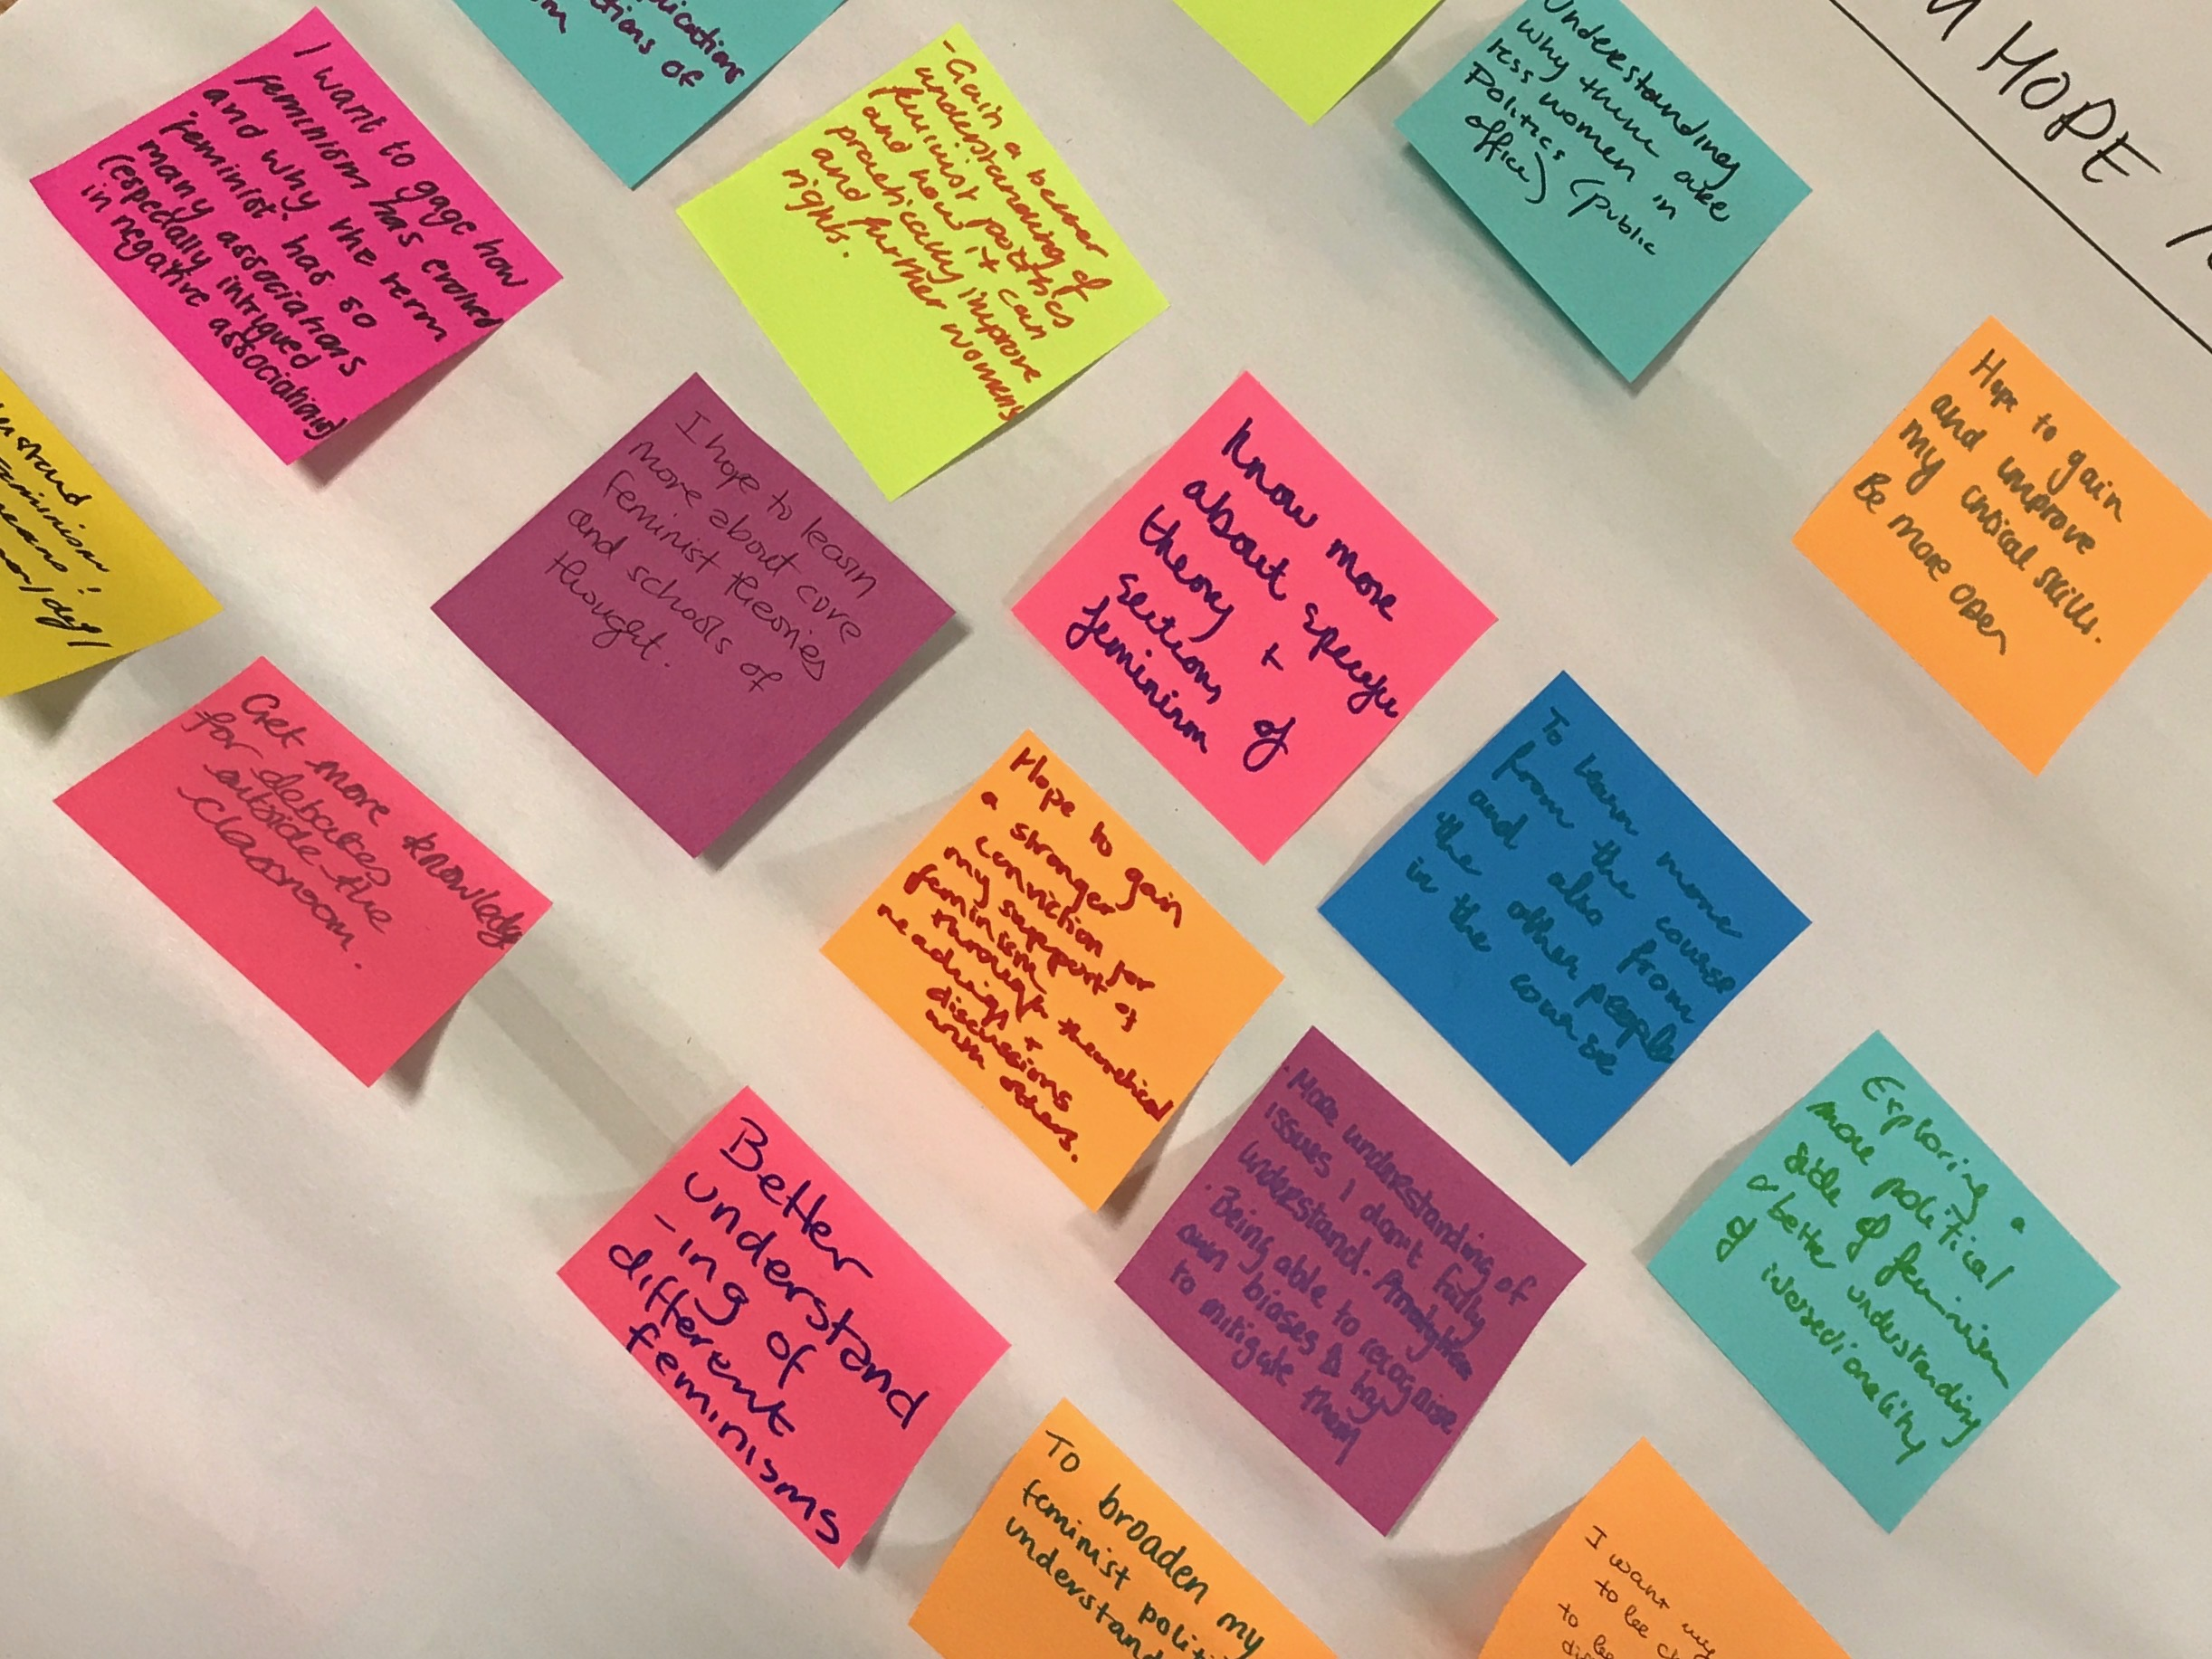 feminism-thoughts-workshop